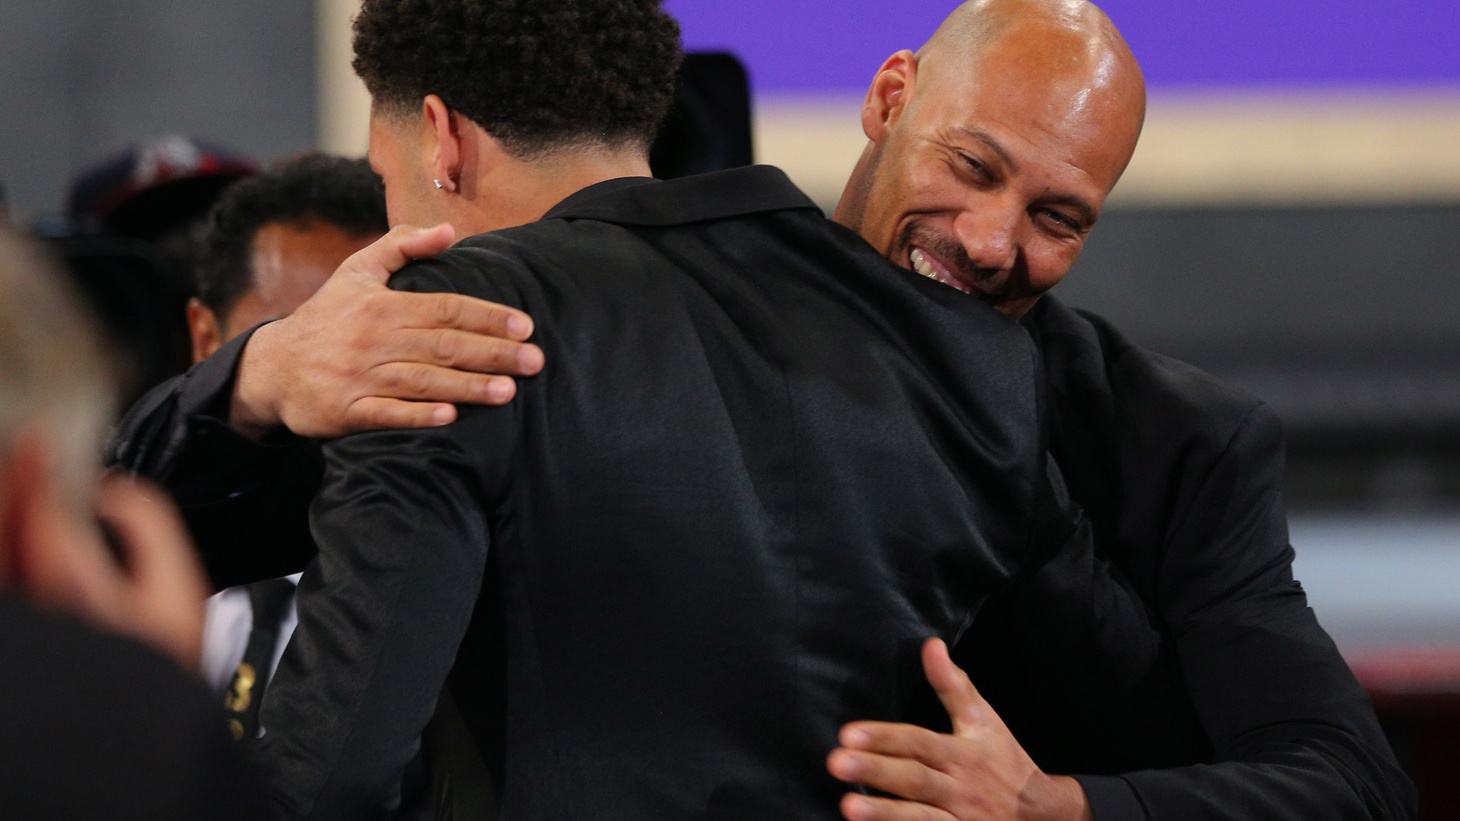 Lonzo Ball (UCLA) celebrates with his father LaVar Ball after being introduced as the number two overall pick to the Los Angeles Lakers in the first round of the 2017 NBA Draft at Barclays Center Photo by Brad Penner/USA TODAY Sports 